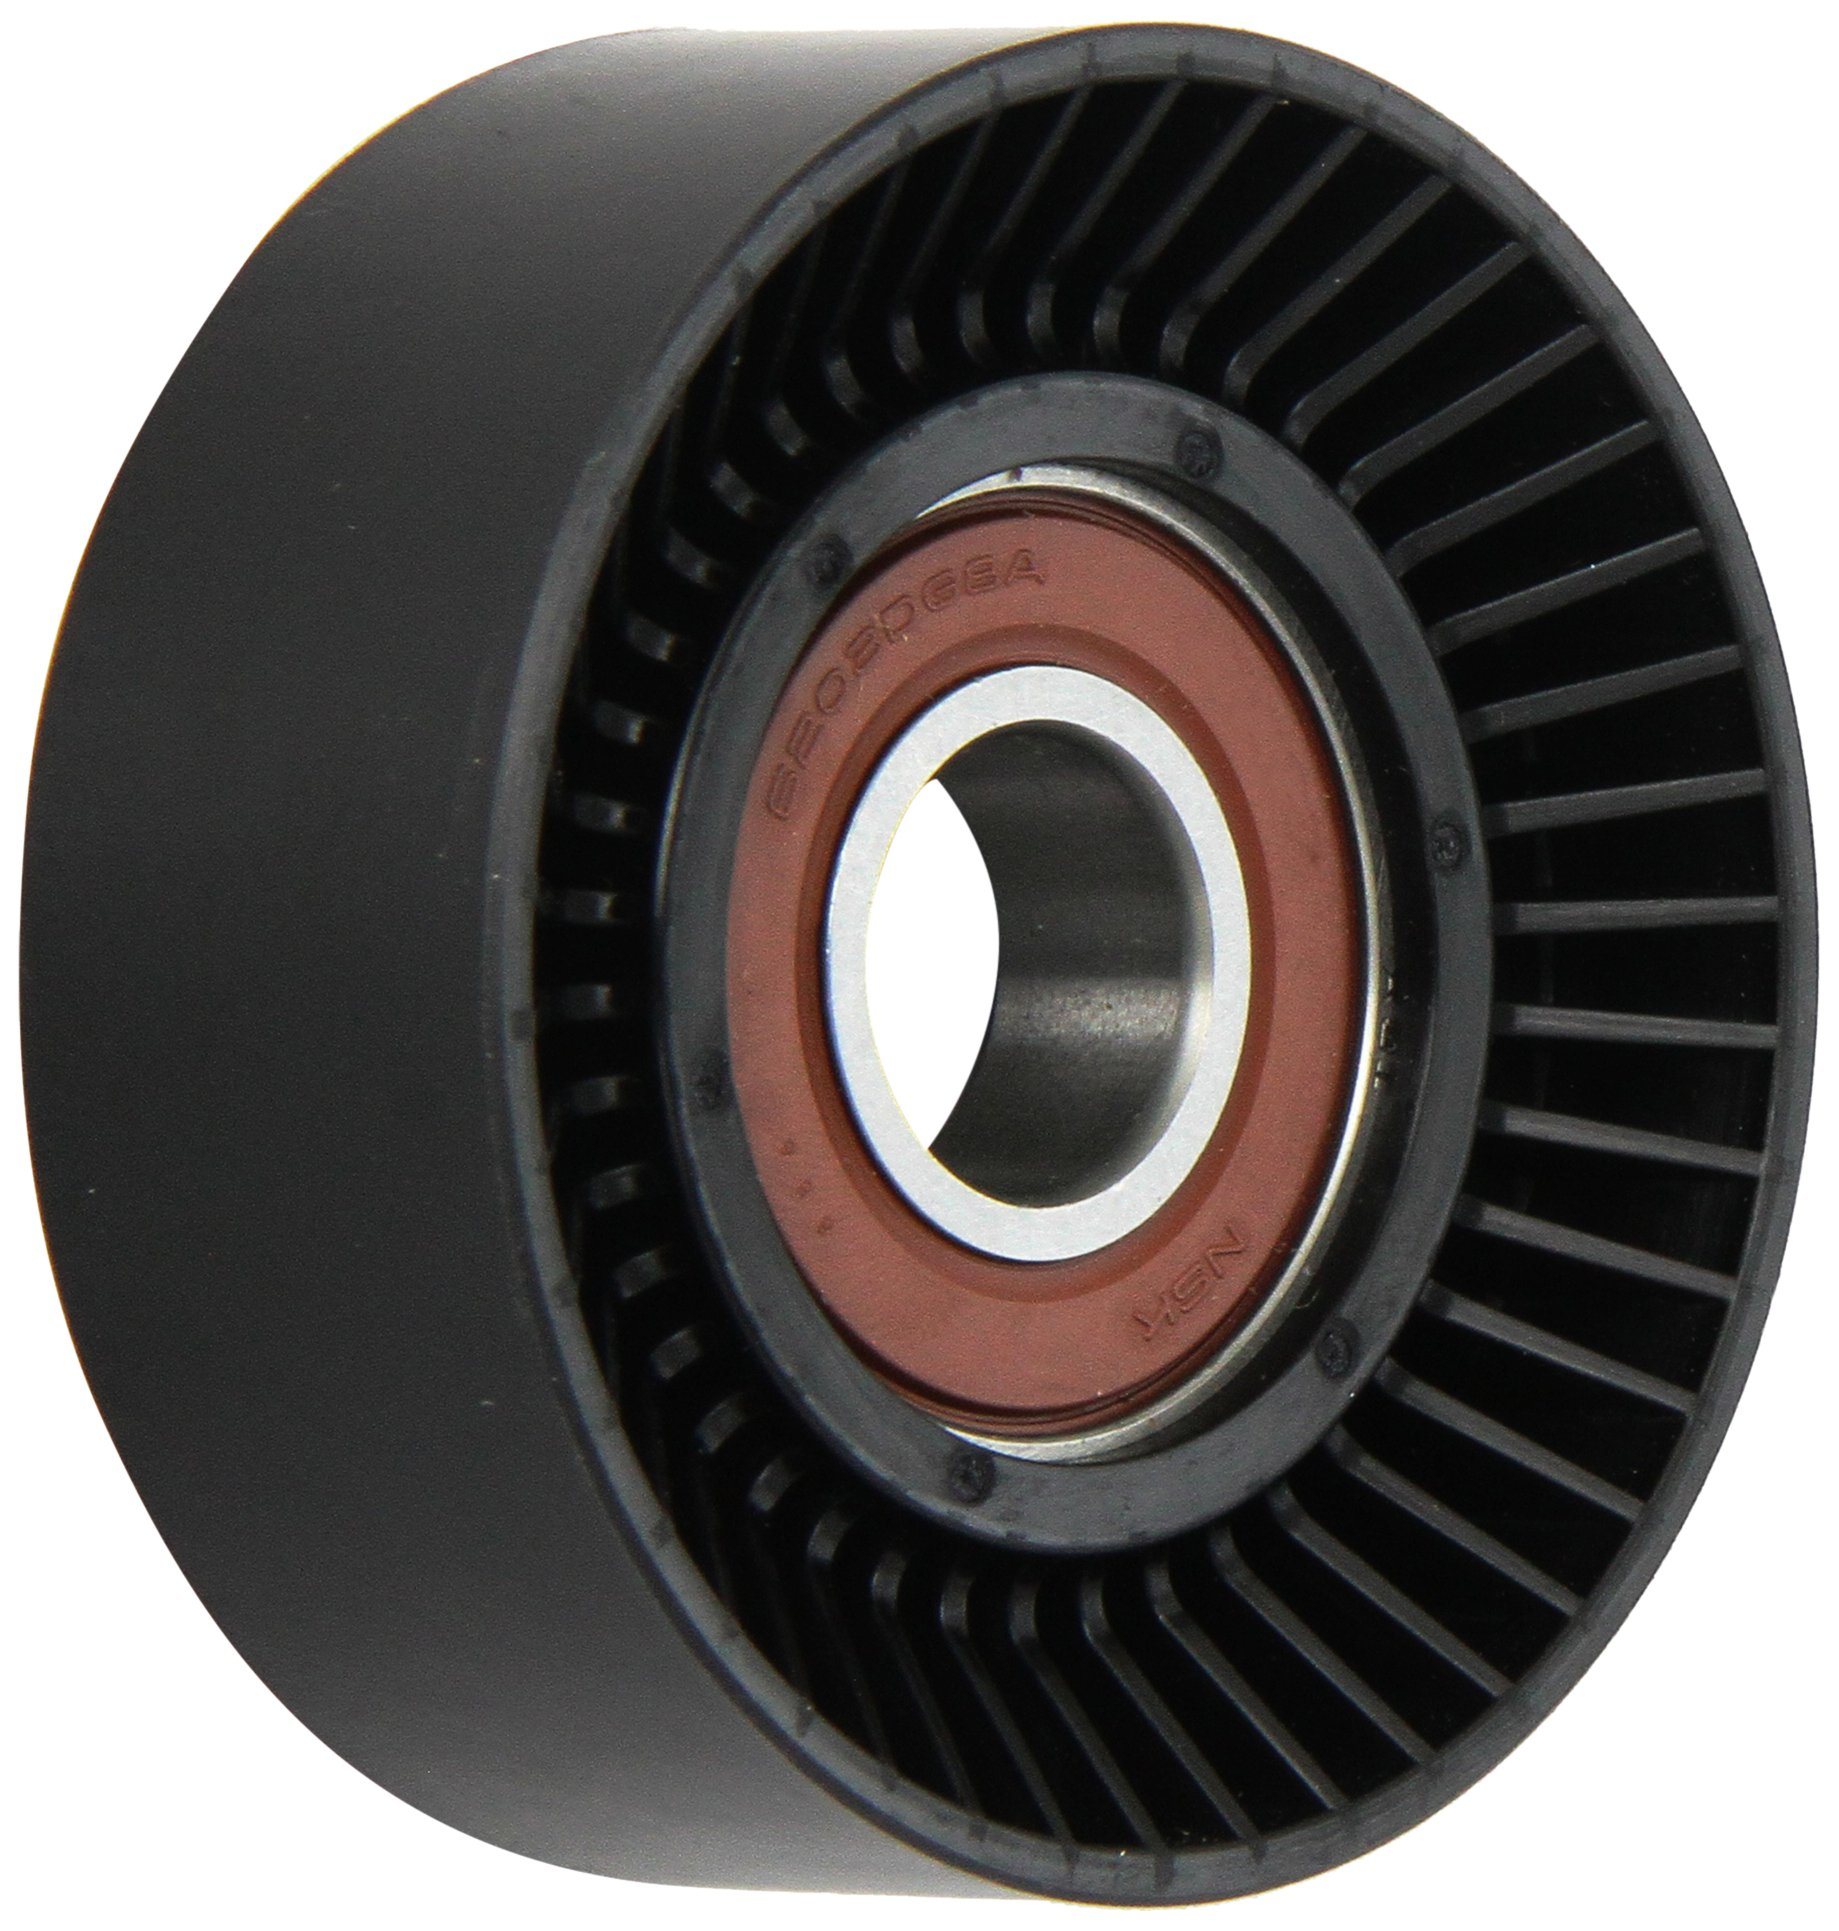 Dayco 89144 Idler Pulley by Dayco